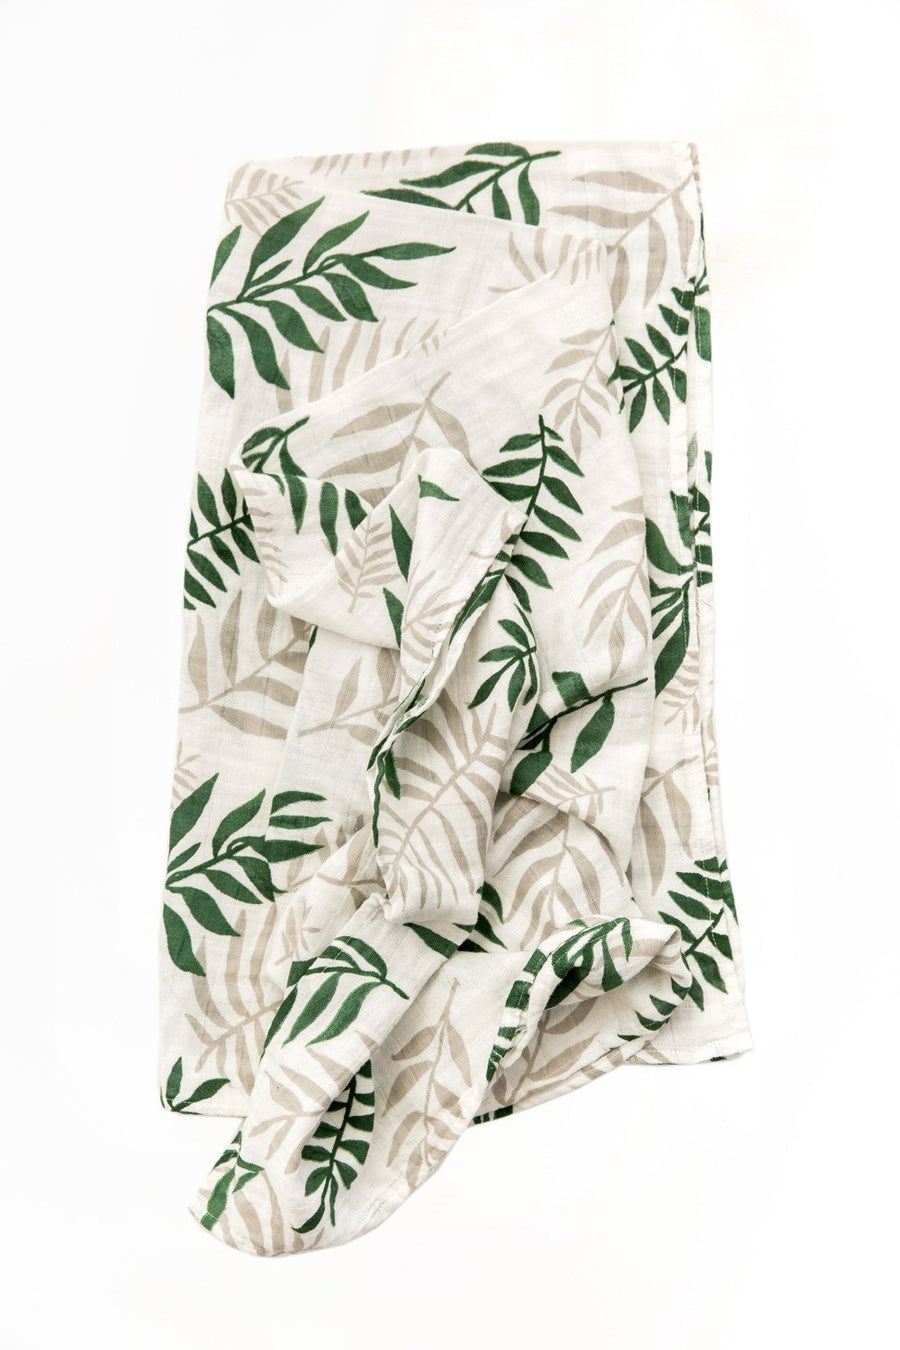 Jungle Fern Swaddle - Tnee's